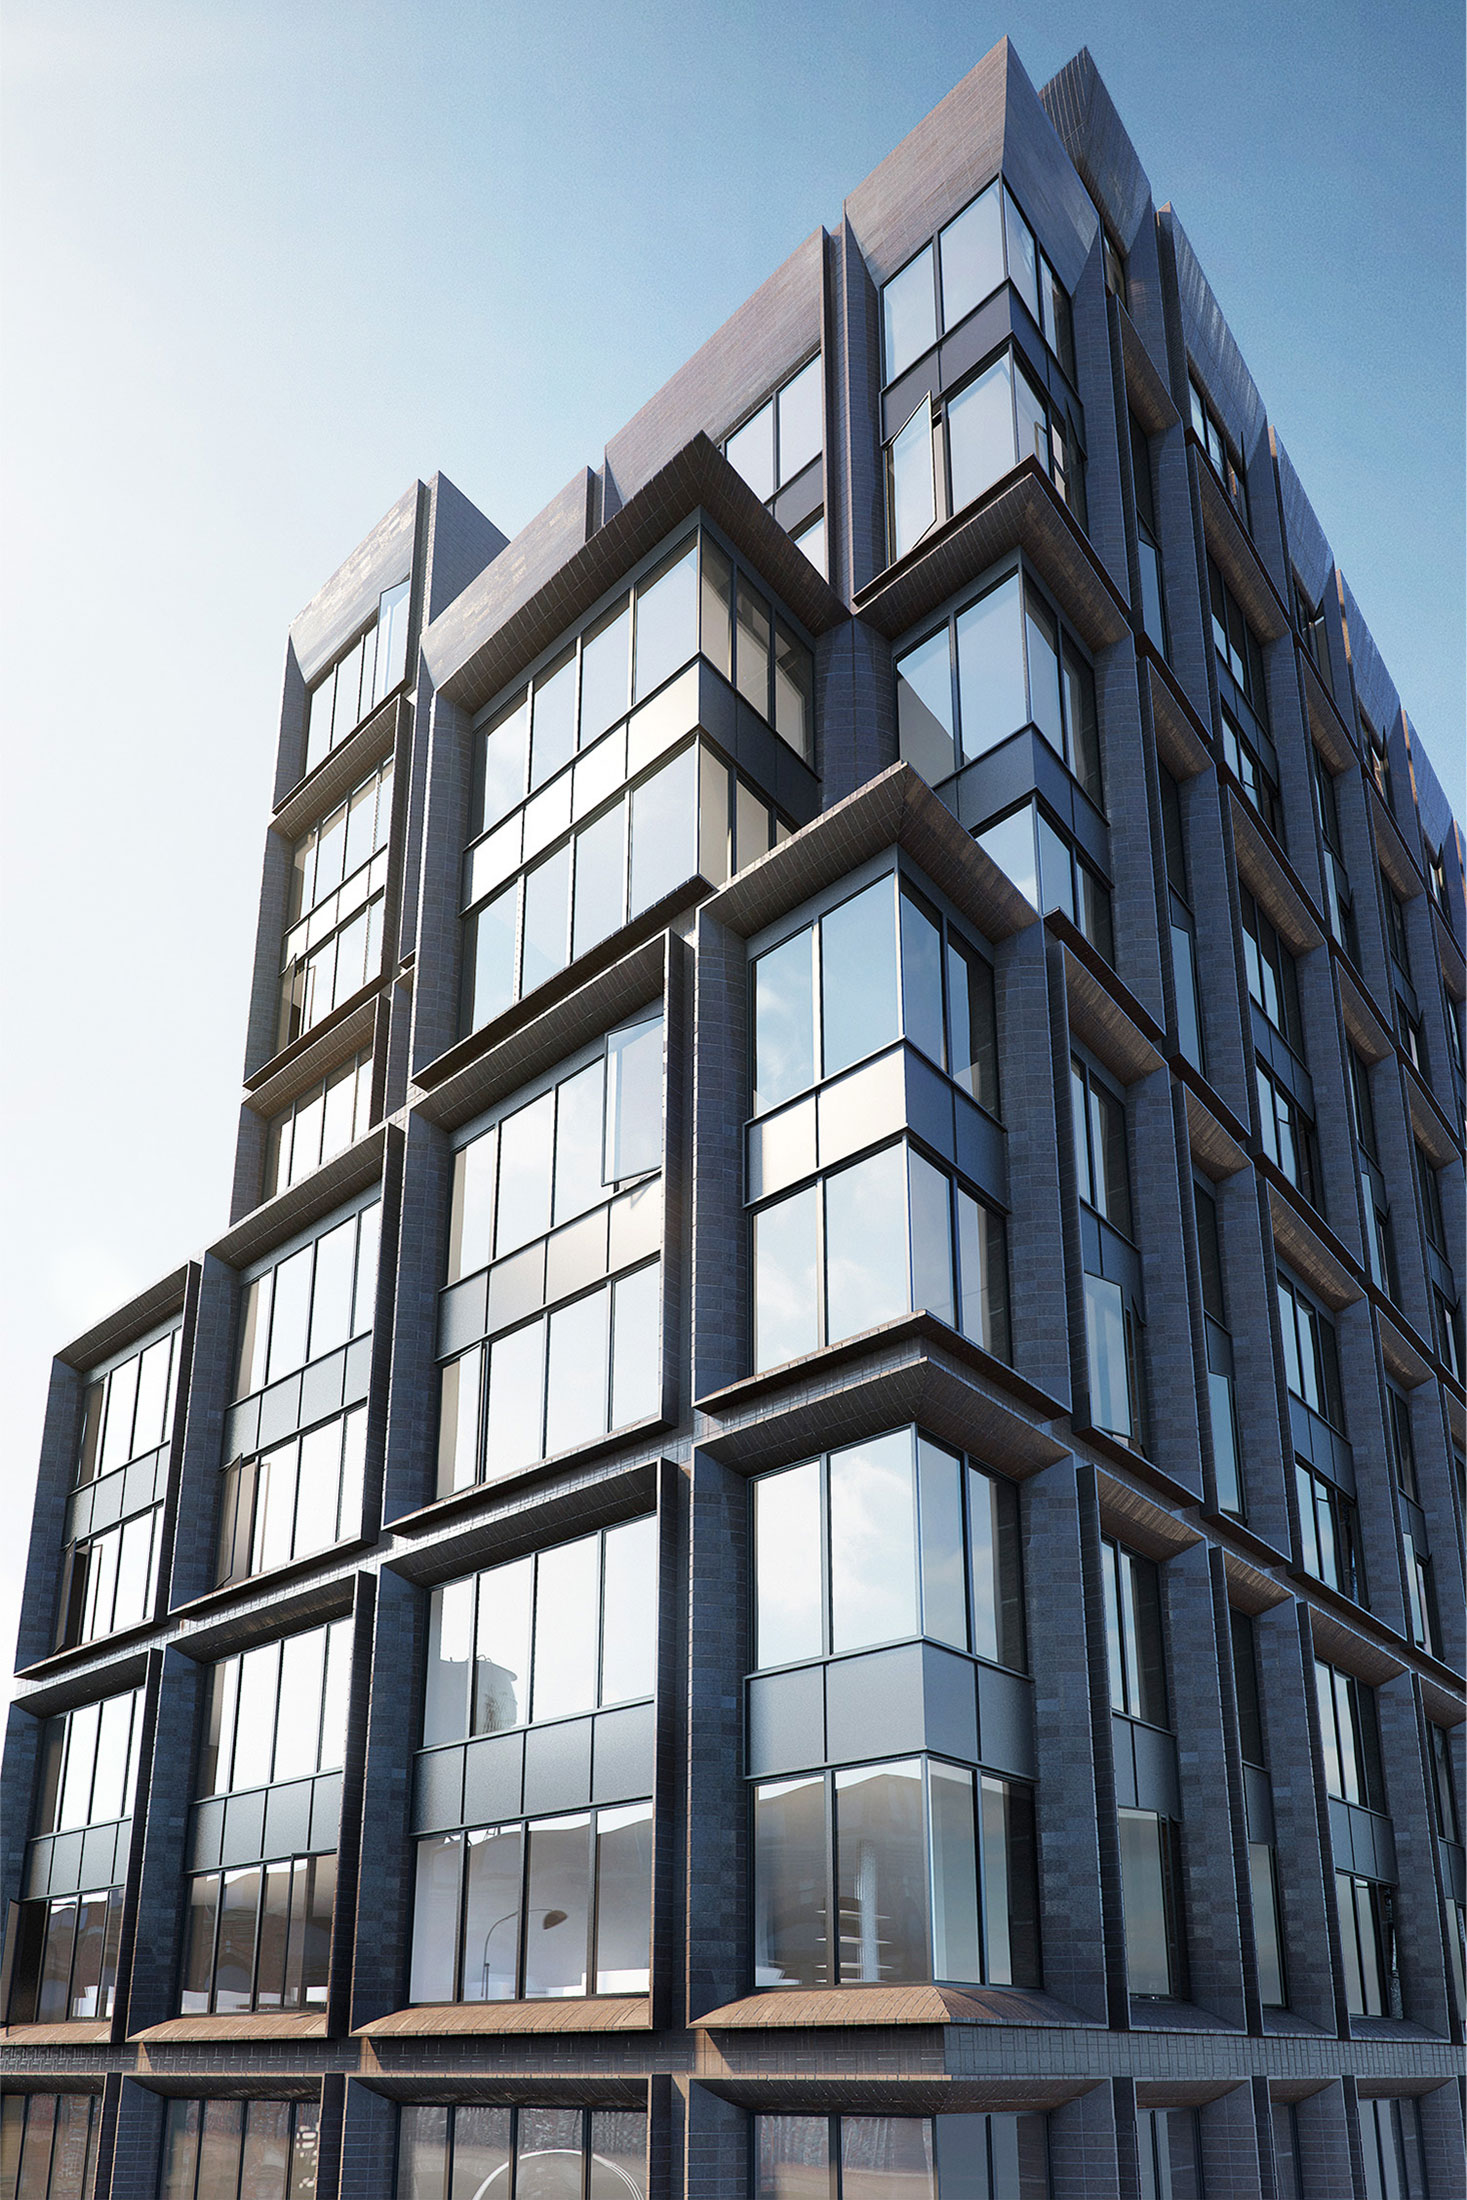 Architectural Rendering of the exterior of the 5 Franklin Place project located in Tribeca, New York City